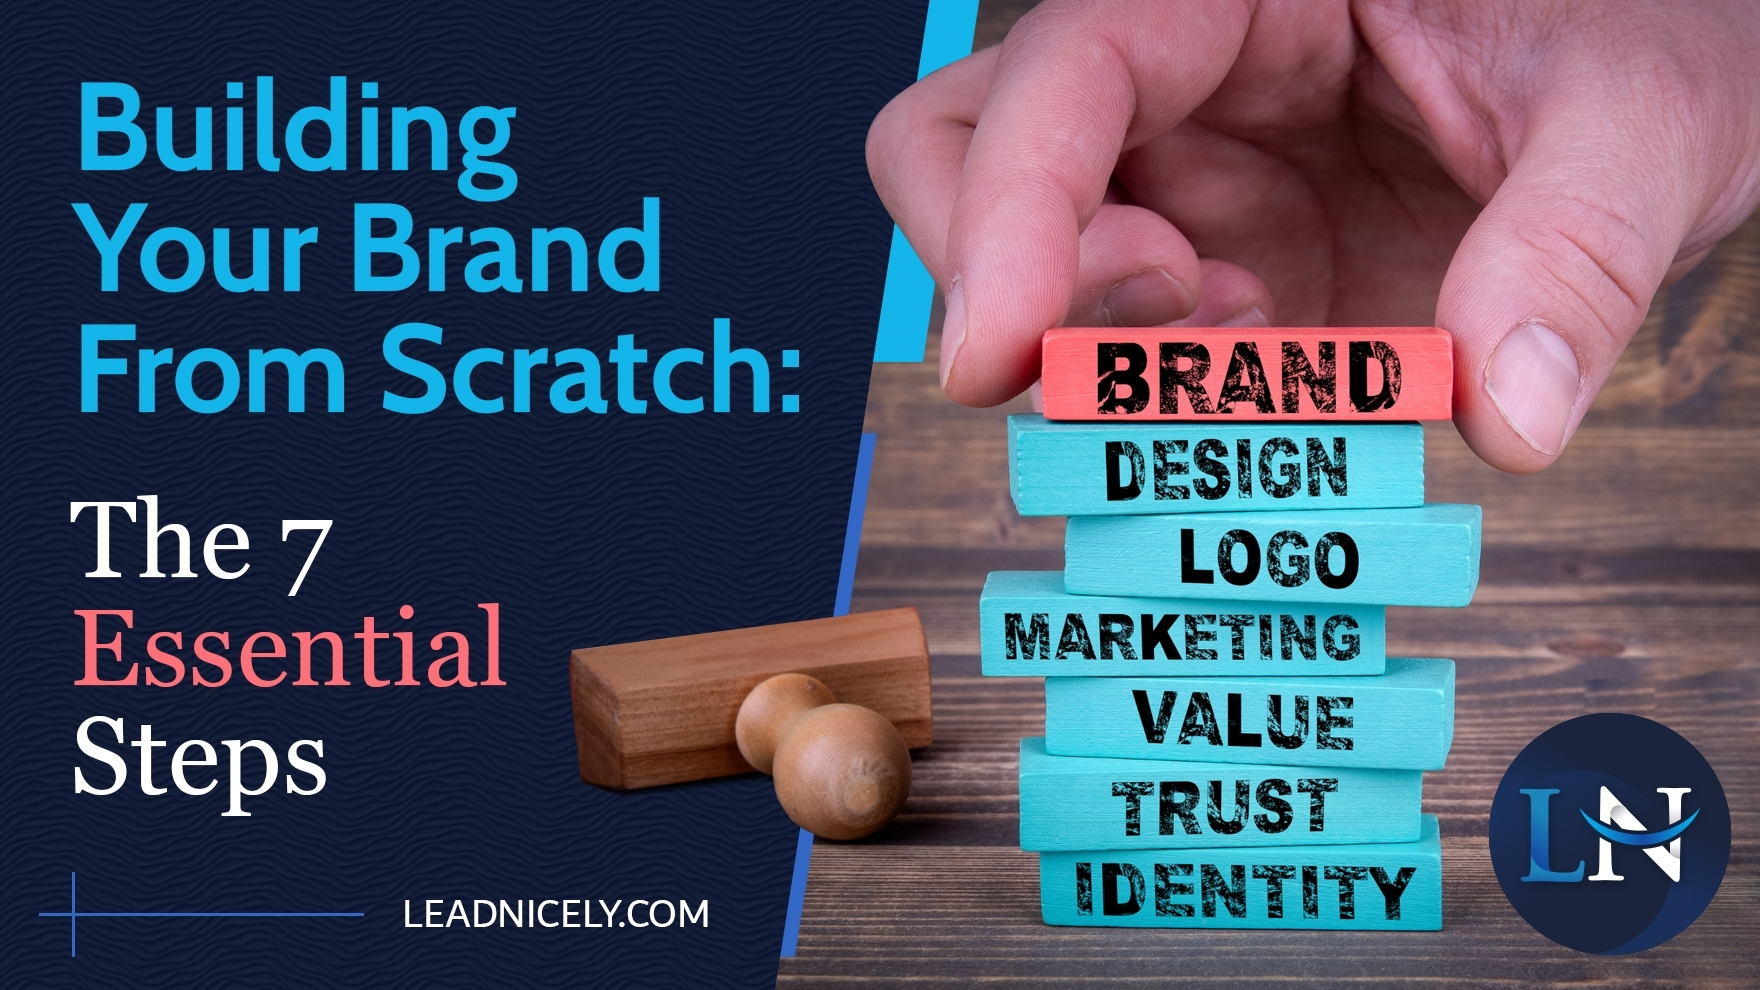 Build Your Brand from Scratch: The 7 Essential Steps